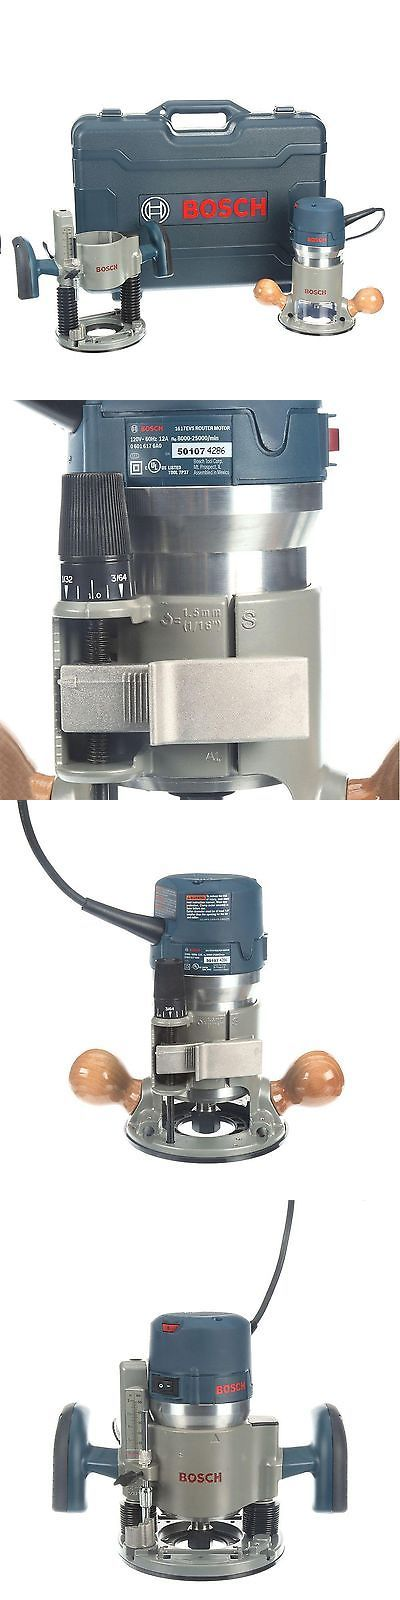 Routers 122829: [No1] Bosch 12A 2-1 4 Hp Peak Corded Variable Speed Plunge Fixed-Base Router Kit -> BUY IT NOW ONLY: $189.95 on eBay!